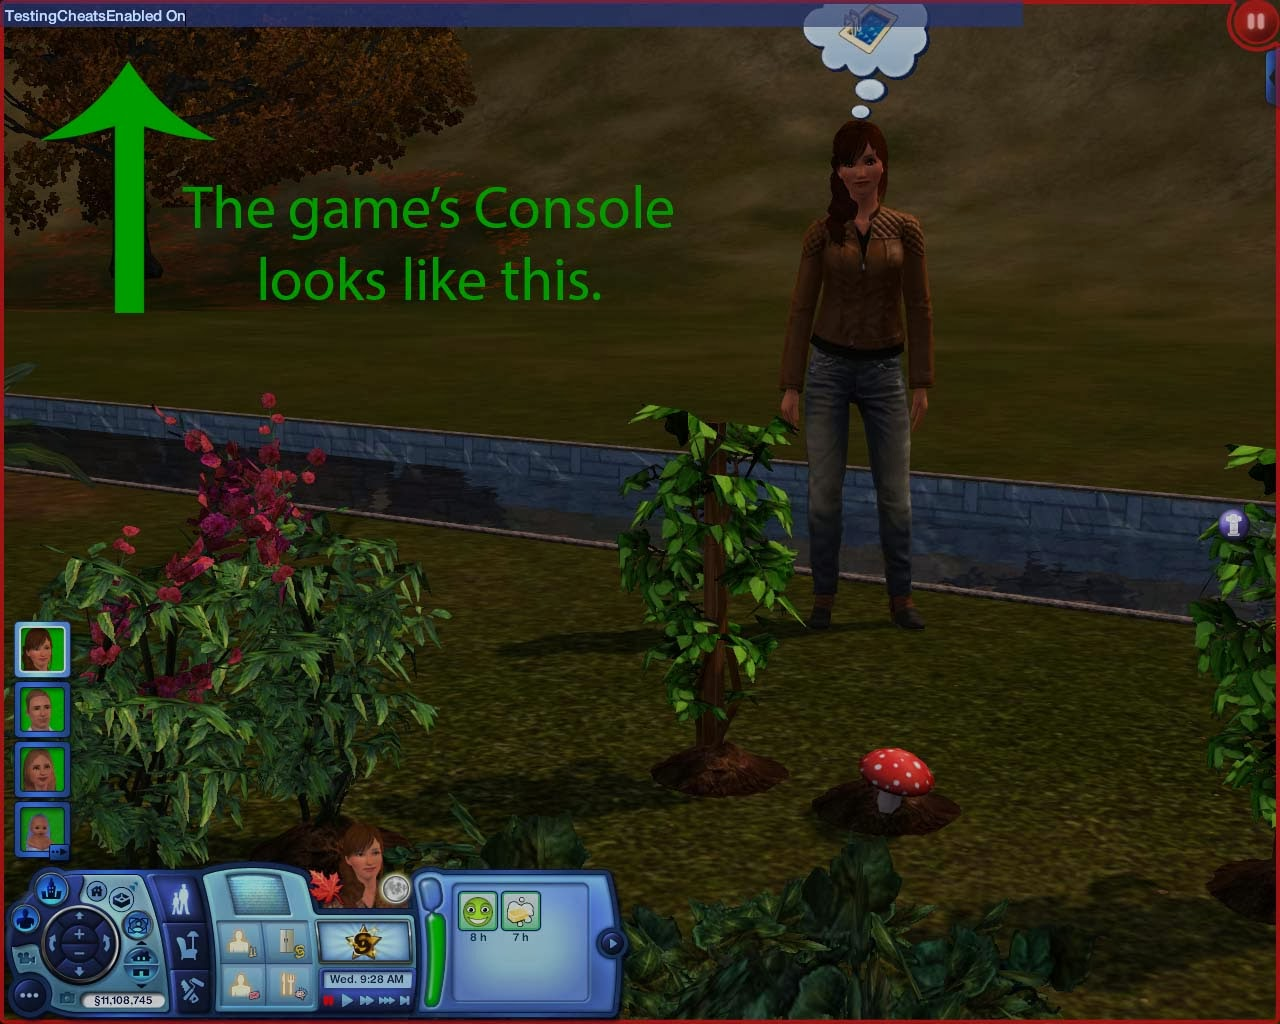 Summer\u0027s Little Sims 3 Garden: The Sims 3: Cheat Codes and How to